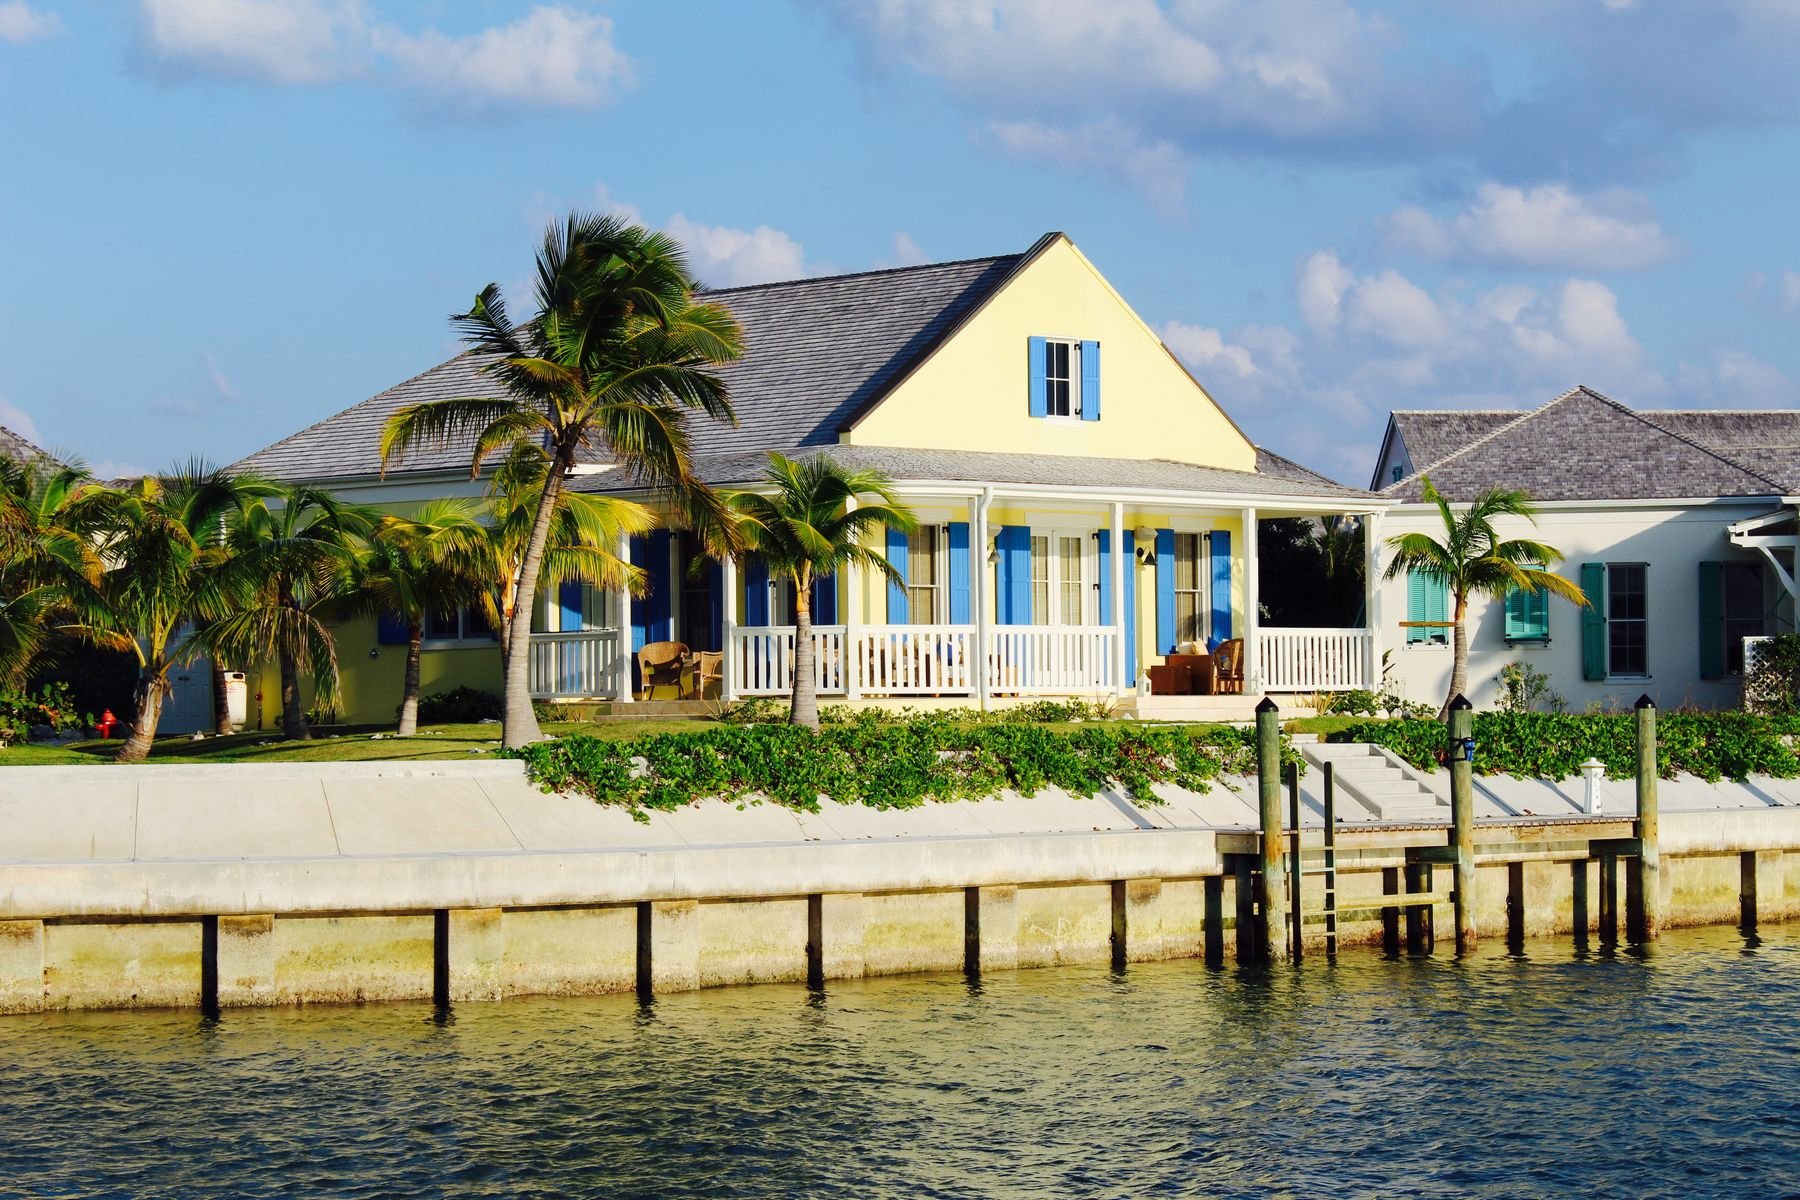 Single Family Home for Sale at Azure Way Cottage at Schooner Bay Schooner Bay, Abaco Bahamas